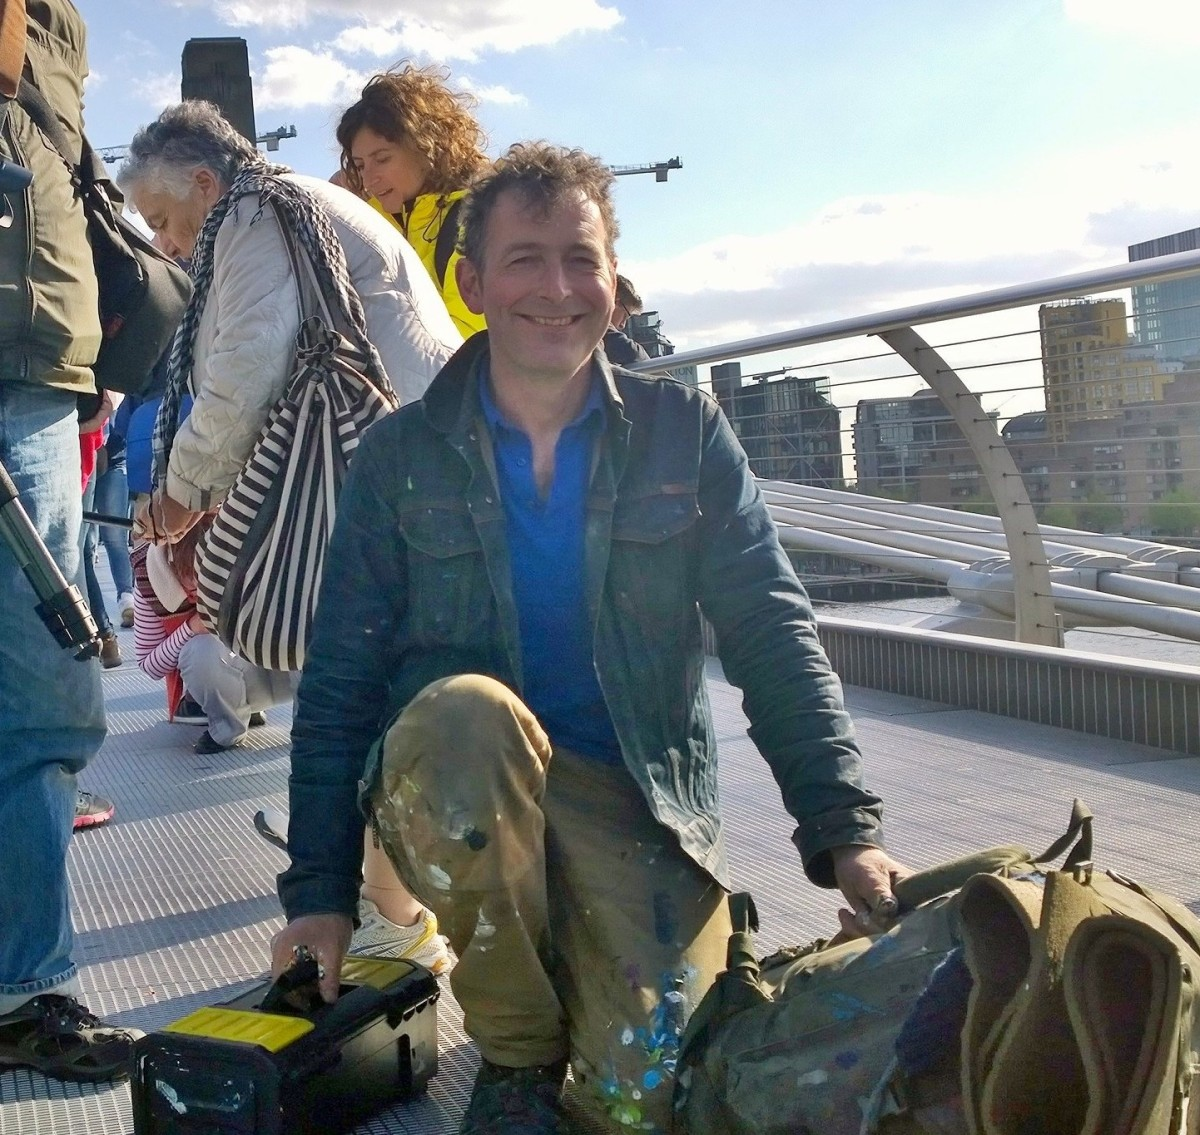 The Chewing Gum Man Paints a Trail of 400 Mini-Artworks on the Millenium Bridge